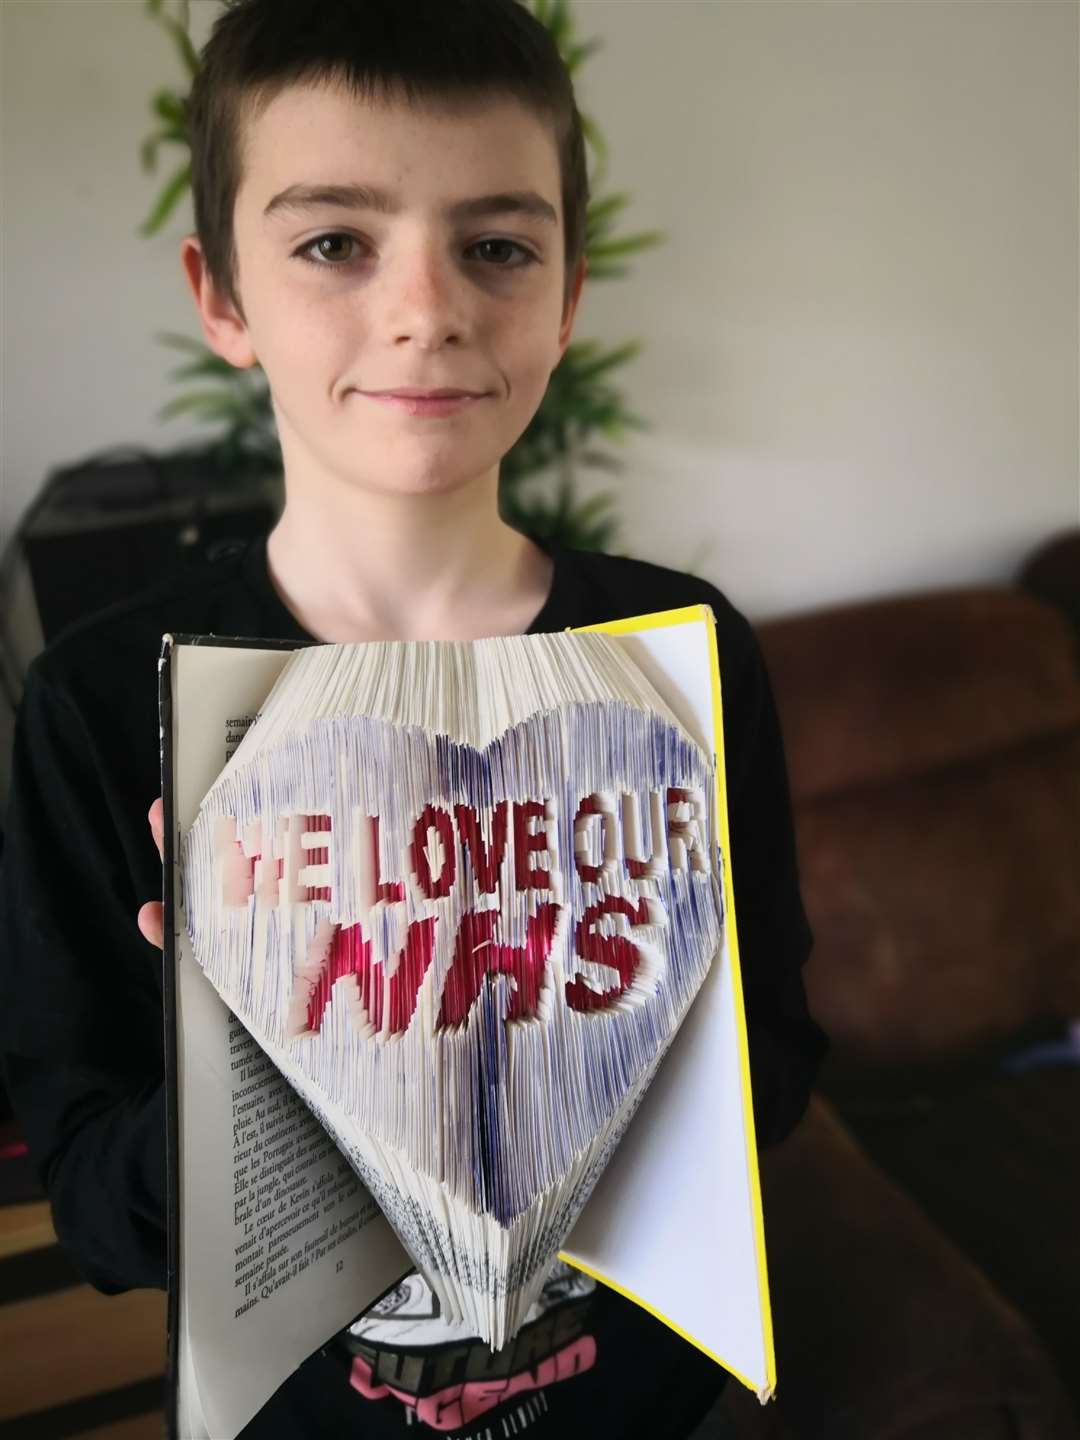 Cameron Balzer, 11, has created his own bookfold design to express his gratitude to the NHS for their work tackling the coronavirus outbreak. (33633461)